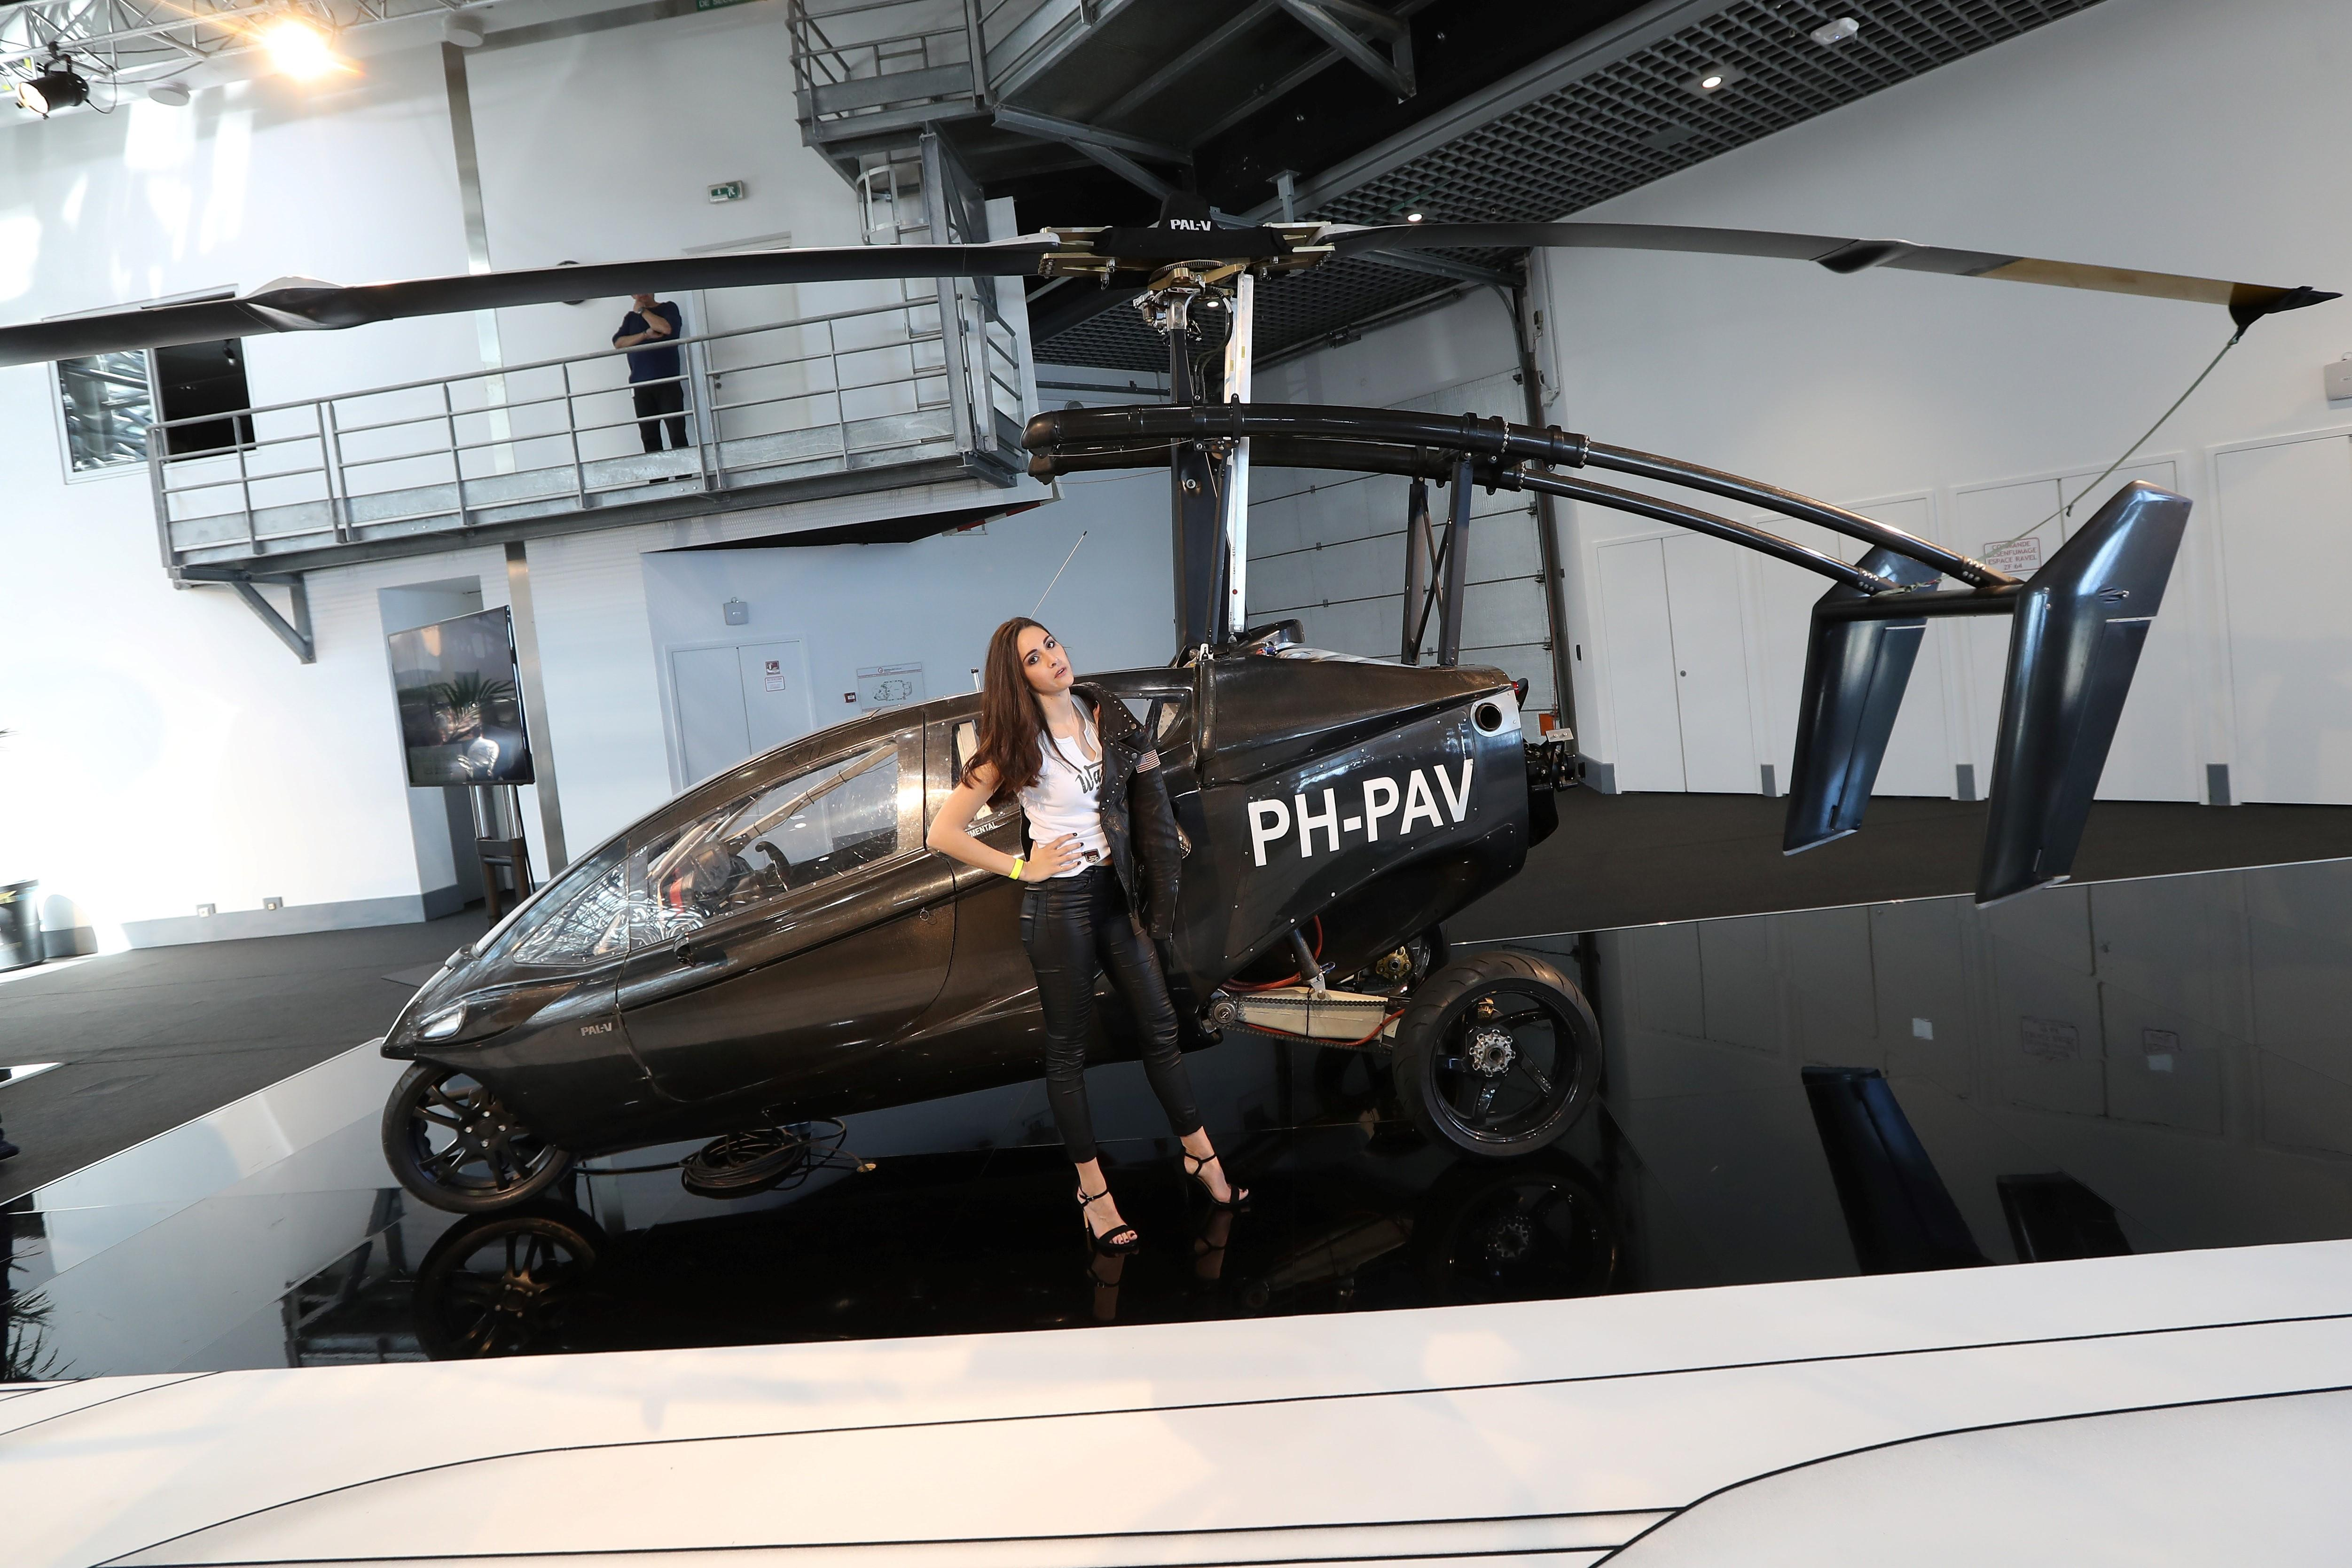 Flying Cars For Sale e pany Will Sell Them In 2019